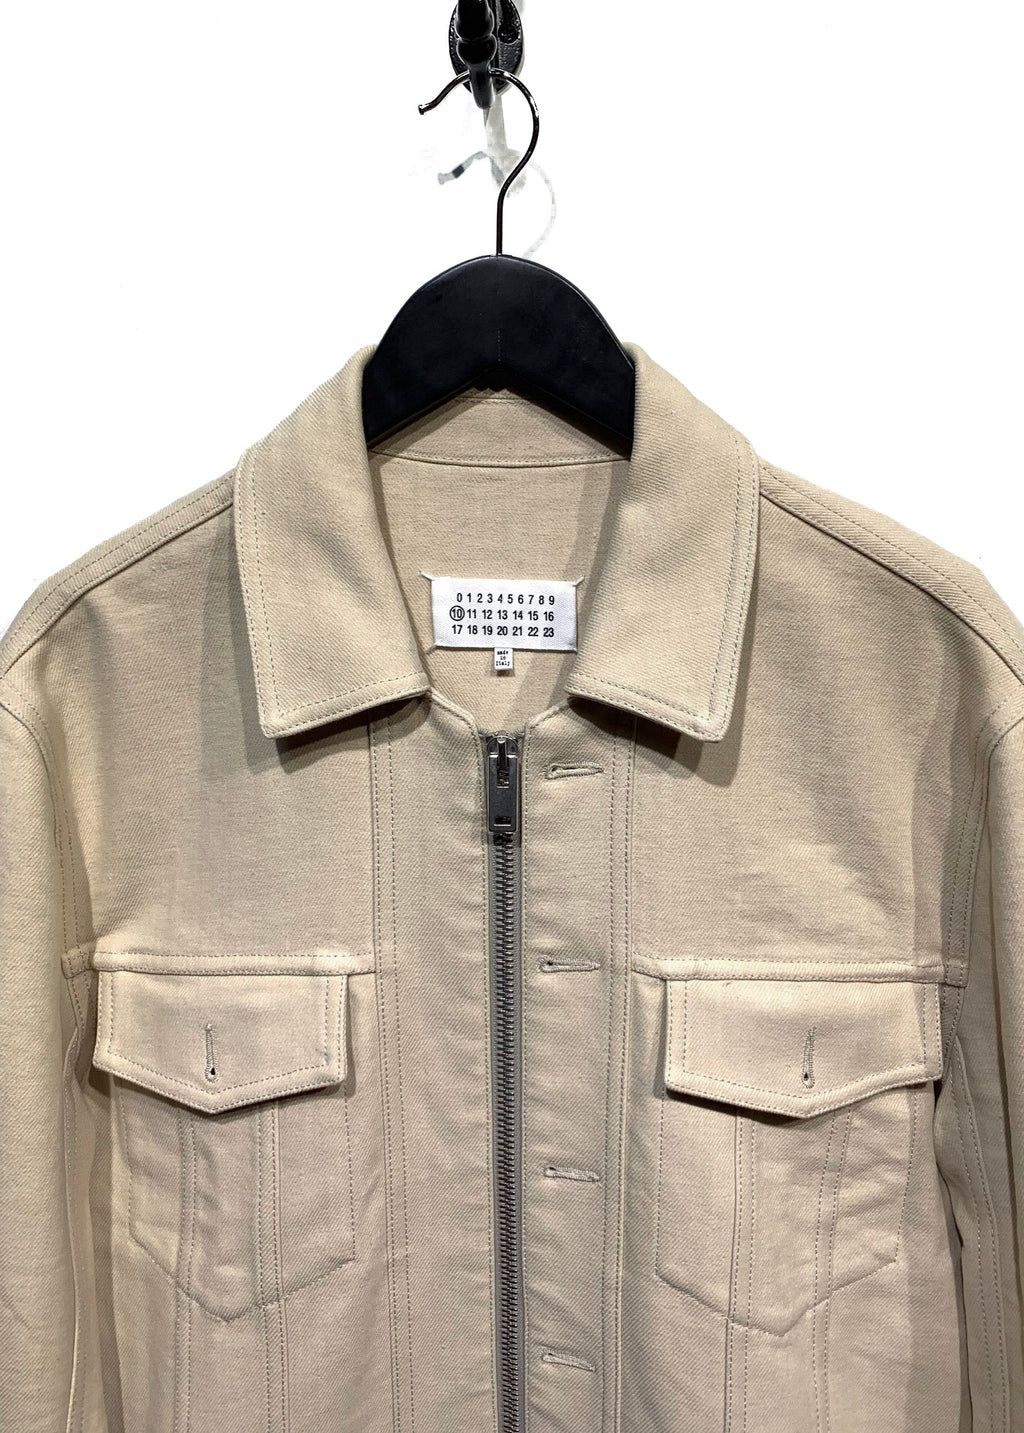 Maison Margiela Beige Cotton Blend Trucker Denim Jacket